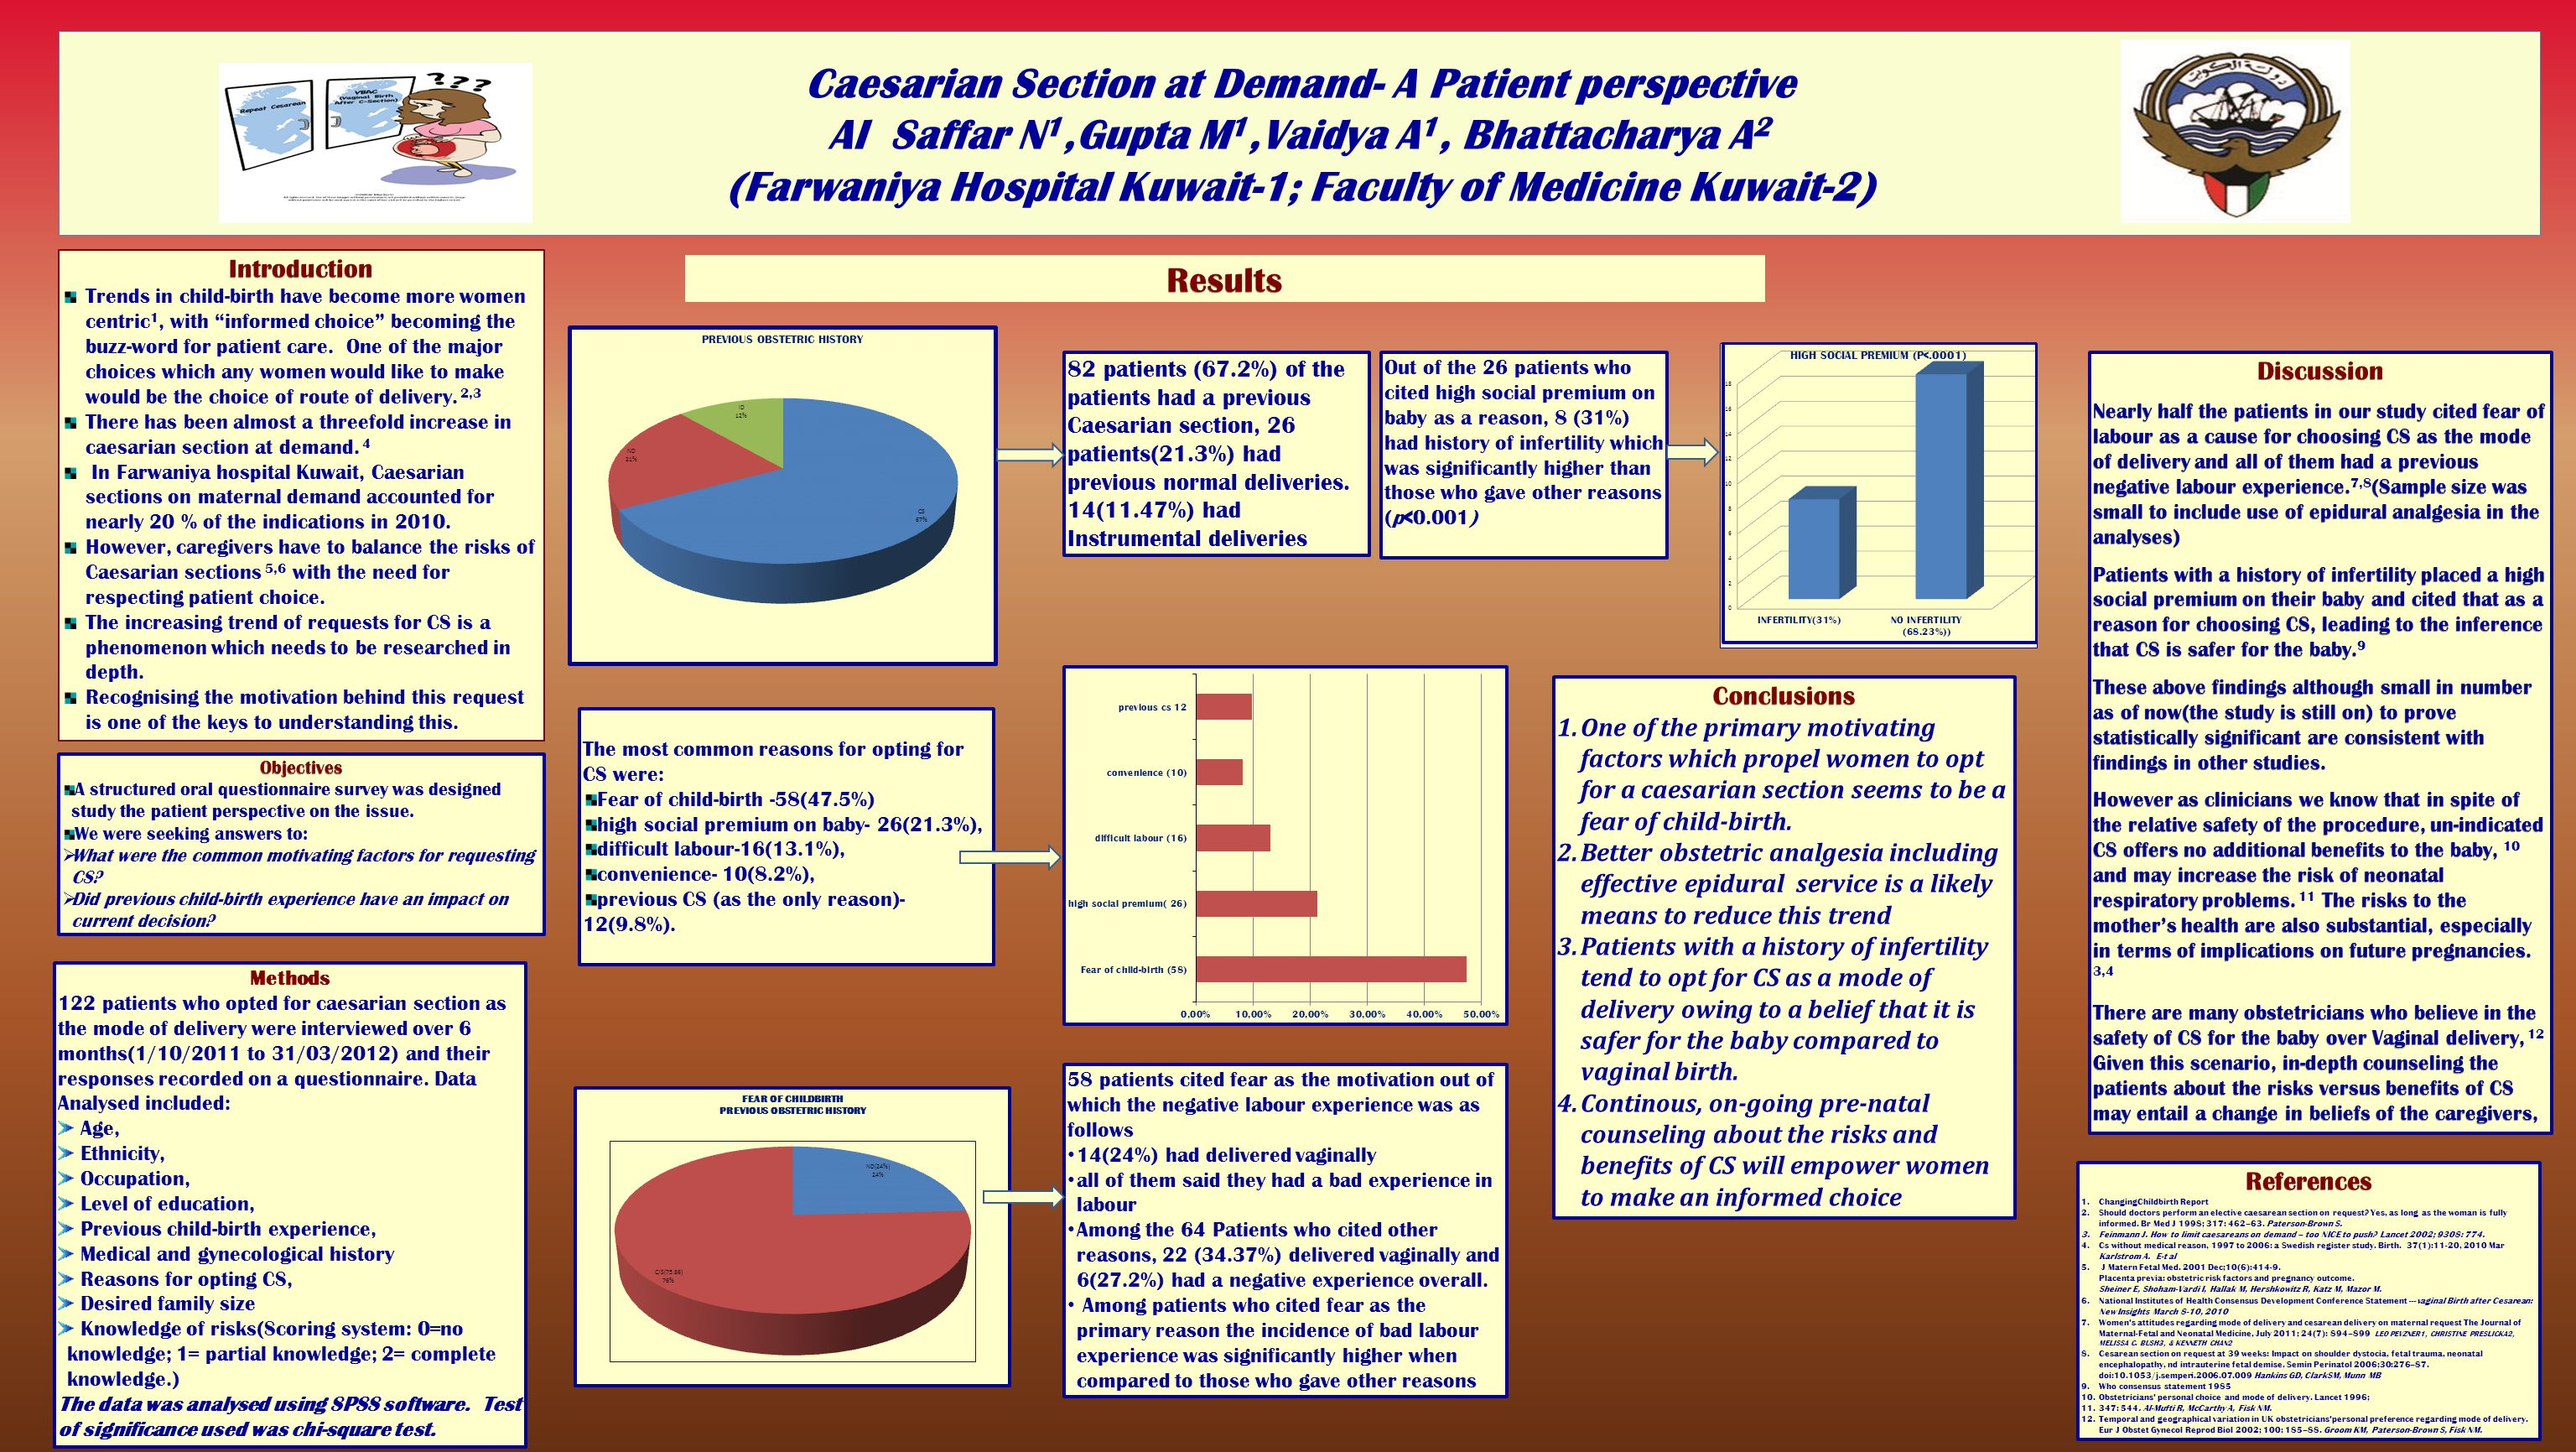 Caesarian Section at Demand- A Patient perspective Al Saffar N 1,Gupta M 1,Vaidya A 1, Bhattacharya A 2 (Farwaniya Hospital Kuwait-1; Faculty of Medicine Kuwait-2) Objectives A structured oral questionnaire survey was designed study the patient perspective on the issue.